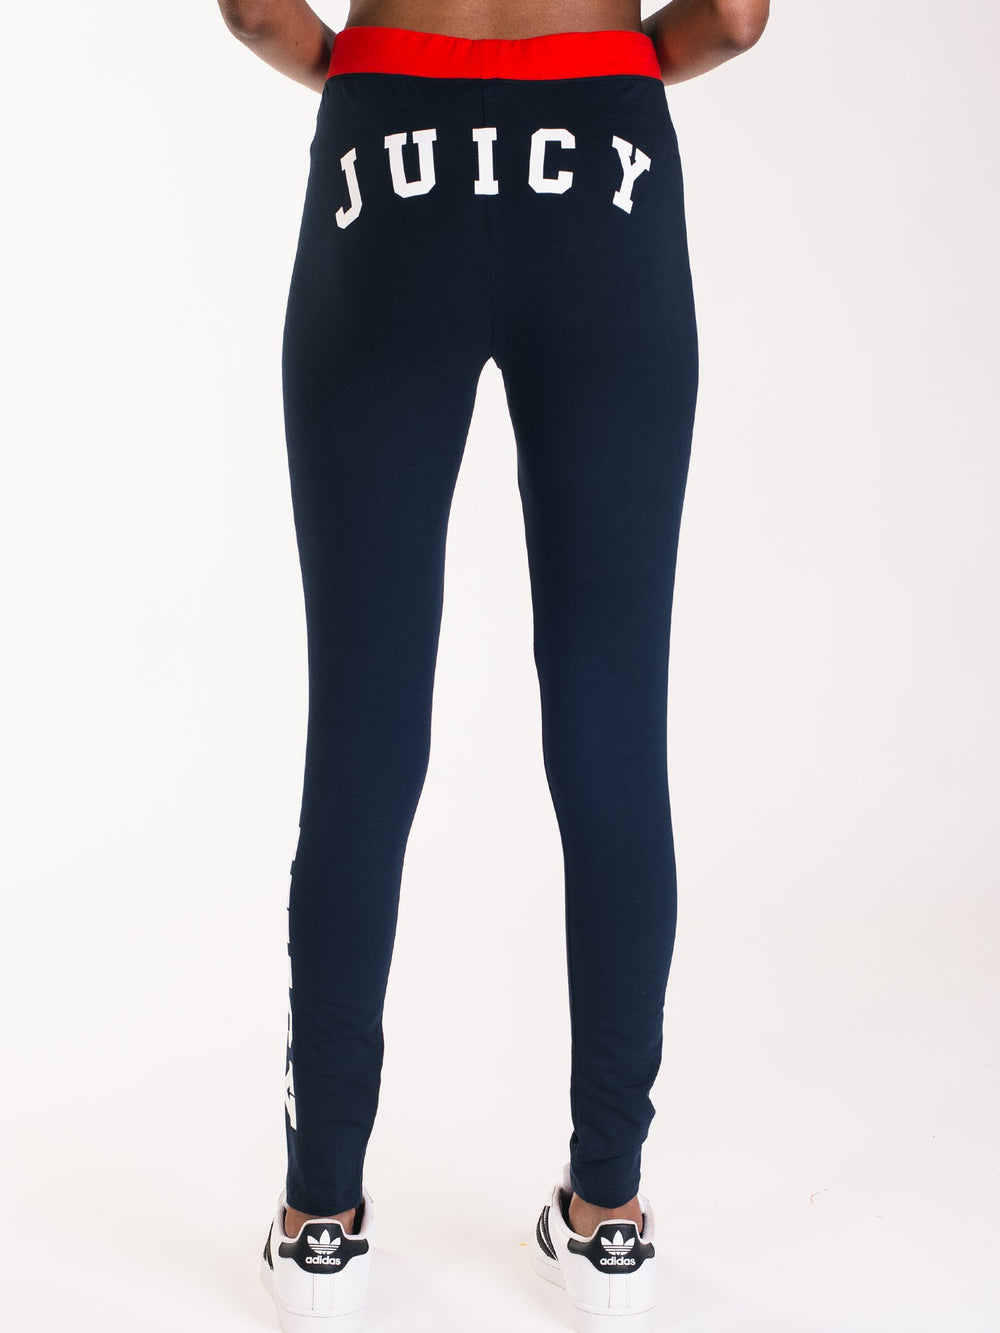 WOMENS JUICY LOGO LEGGING